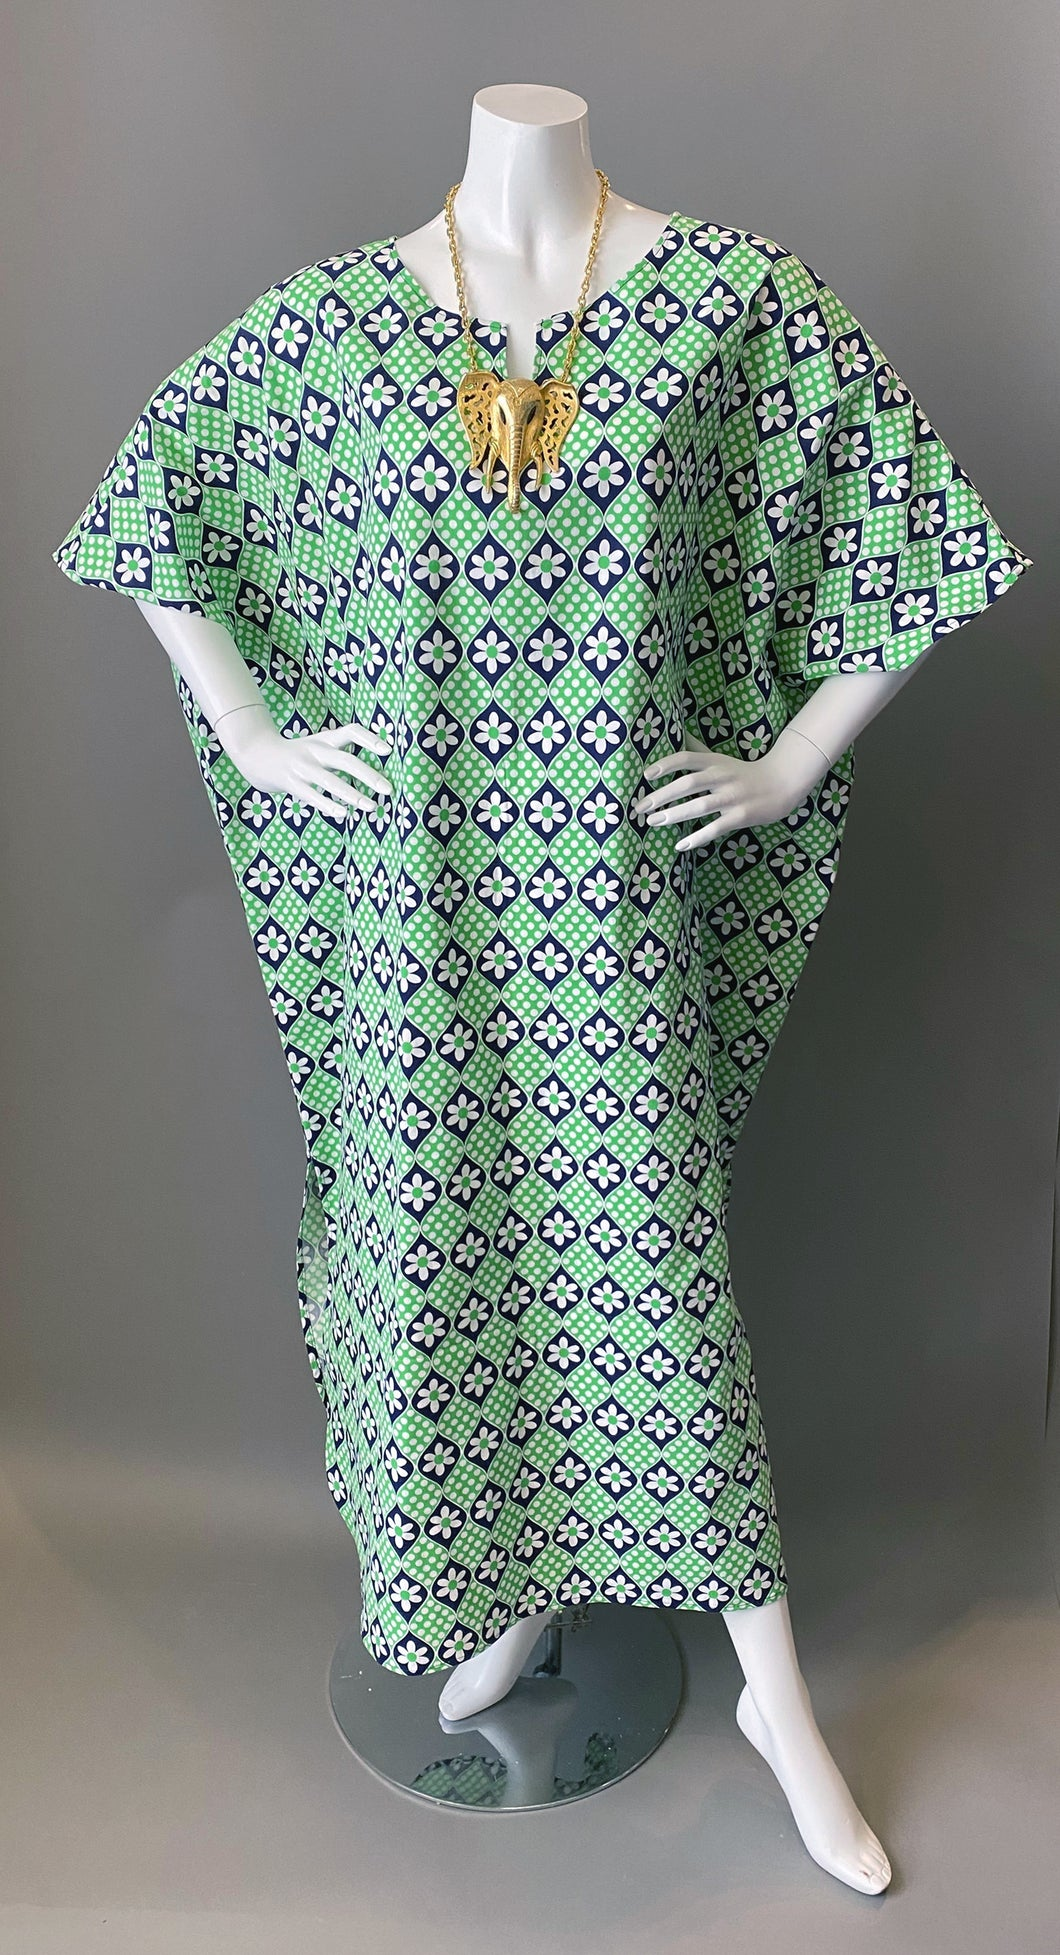 O'pell Mod Green Blue Polka Dot Floral Cotton Tunic Caftan